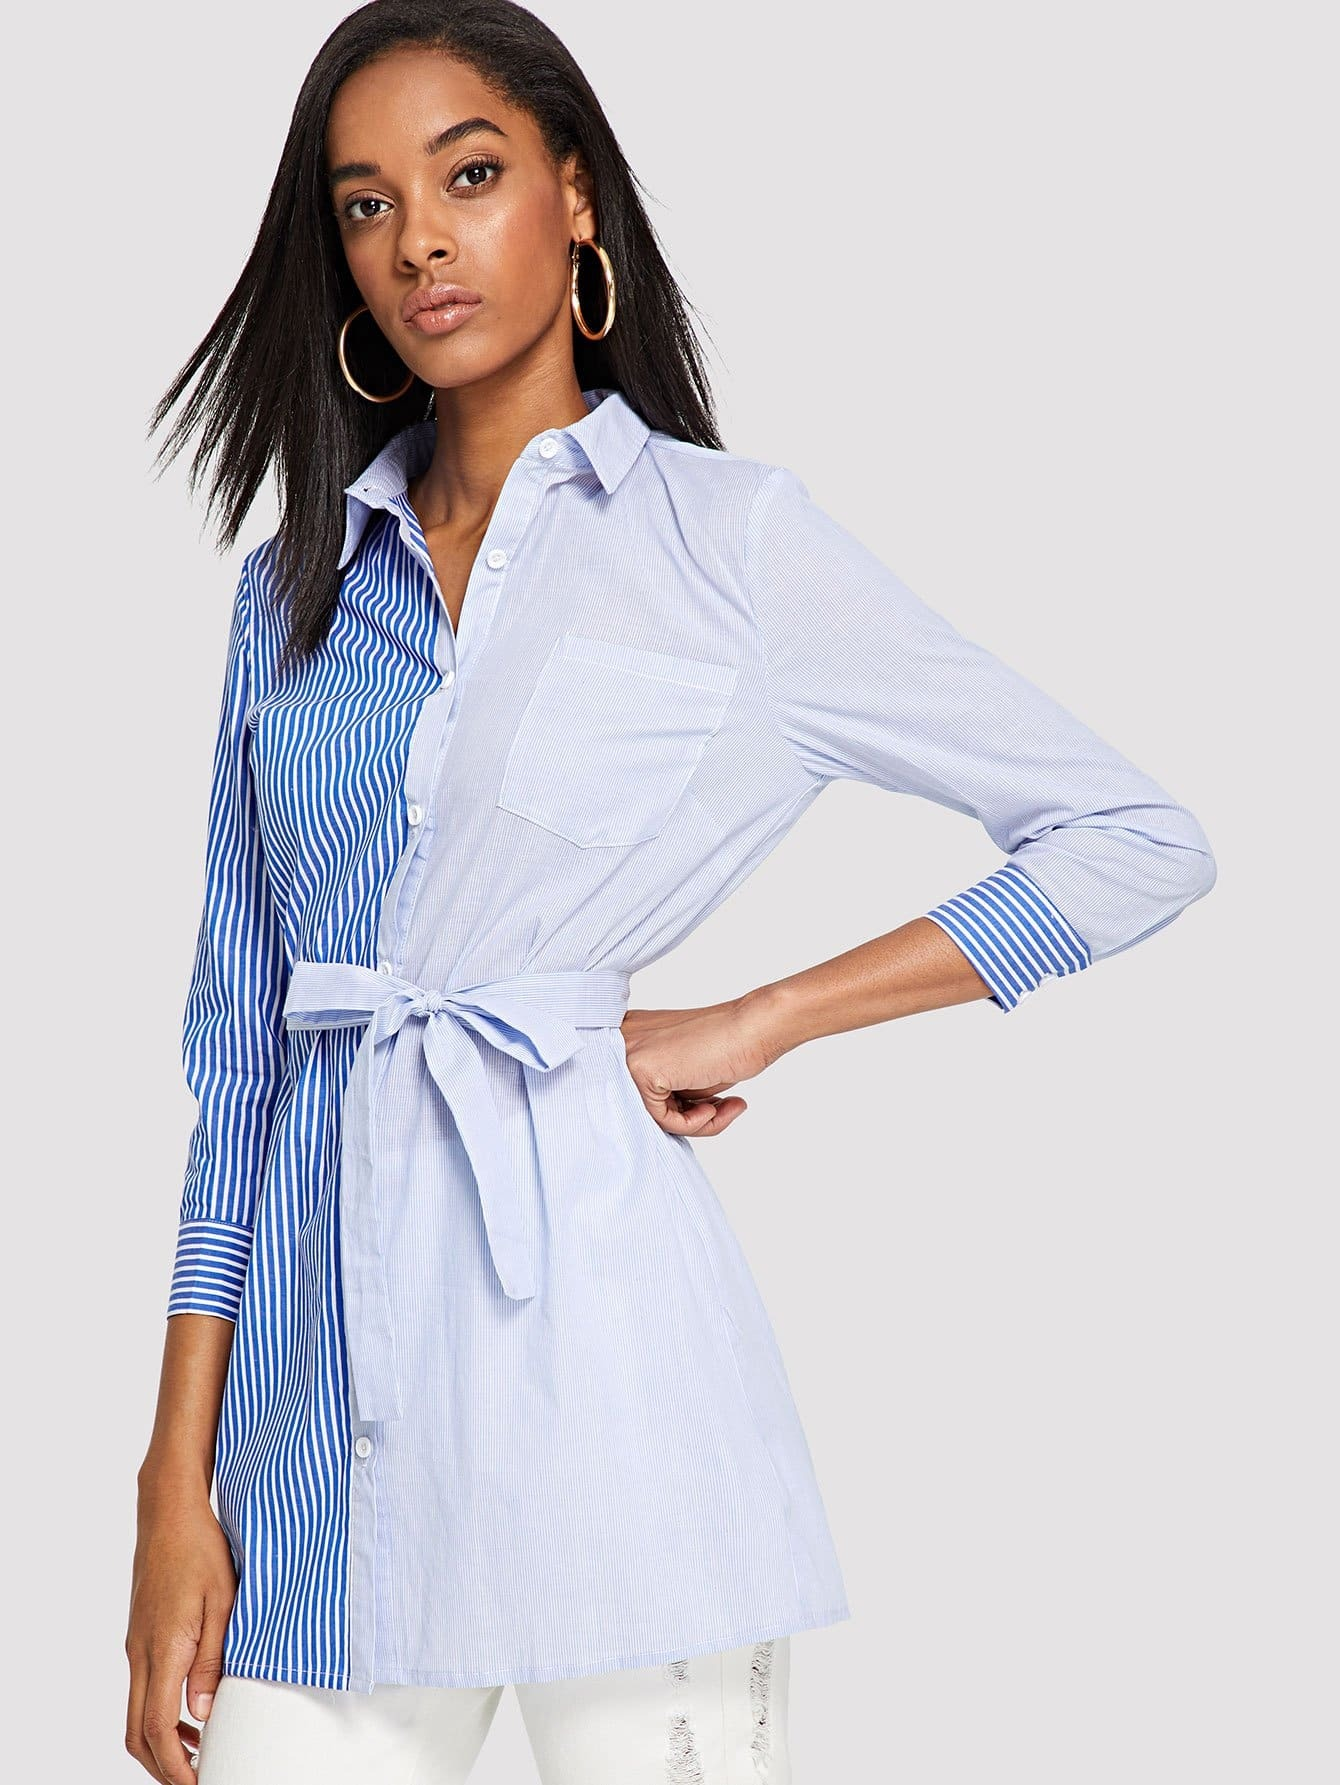 Pocket Front Cut and Sew Shirt Dress pocket front shirt dress